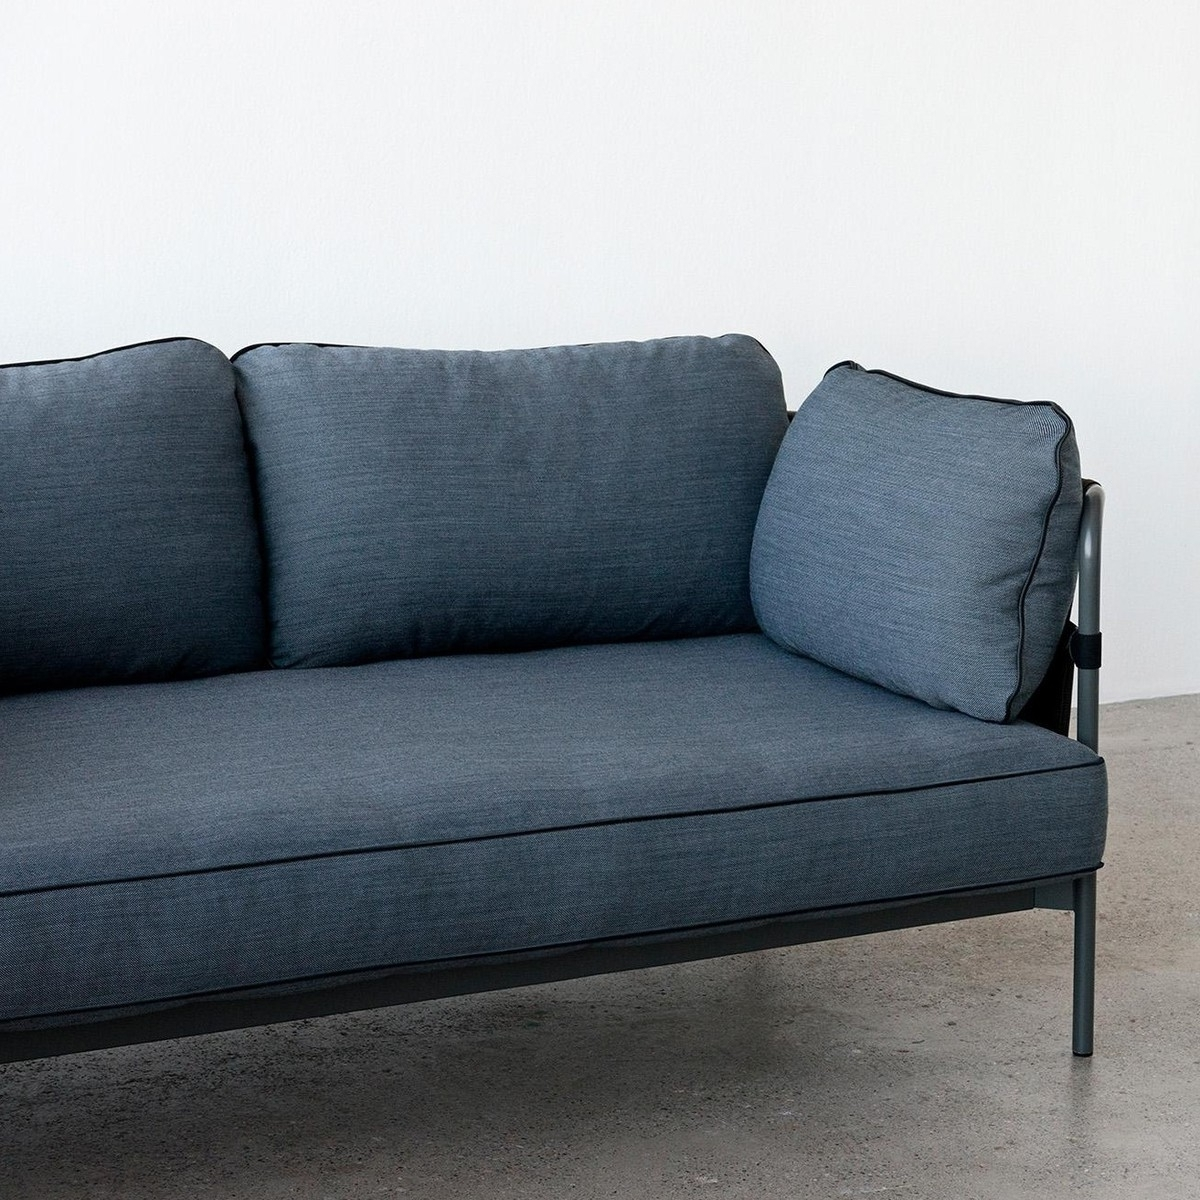 Current Can 2 Seater Sofa Frame Black (View 7 of 15)